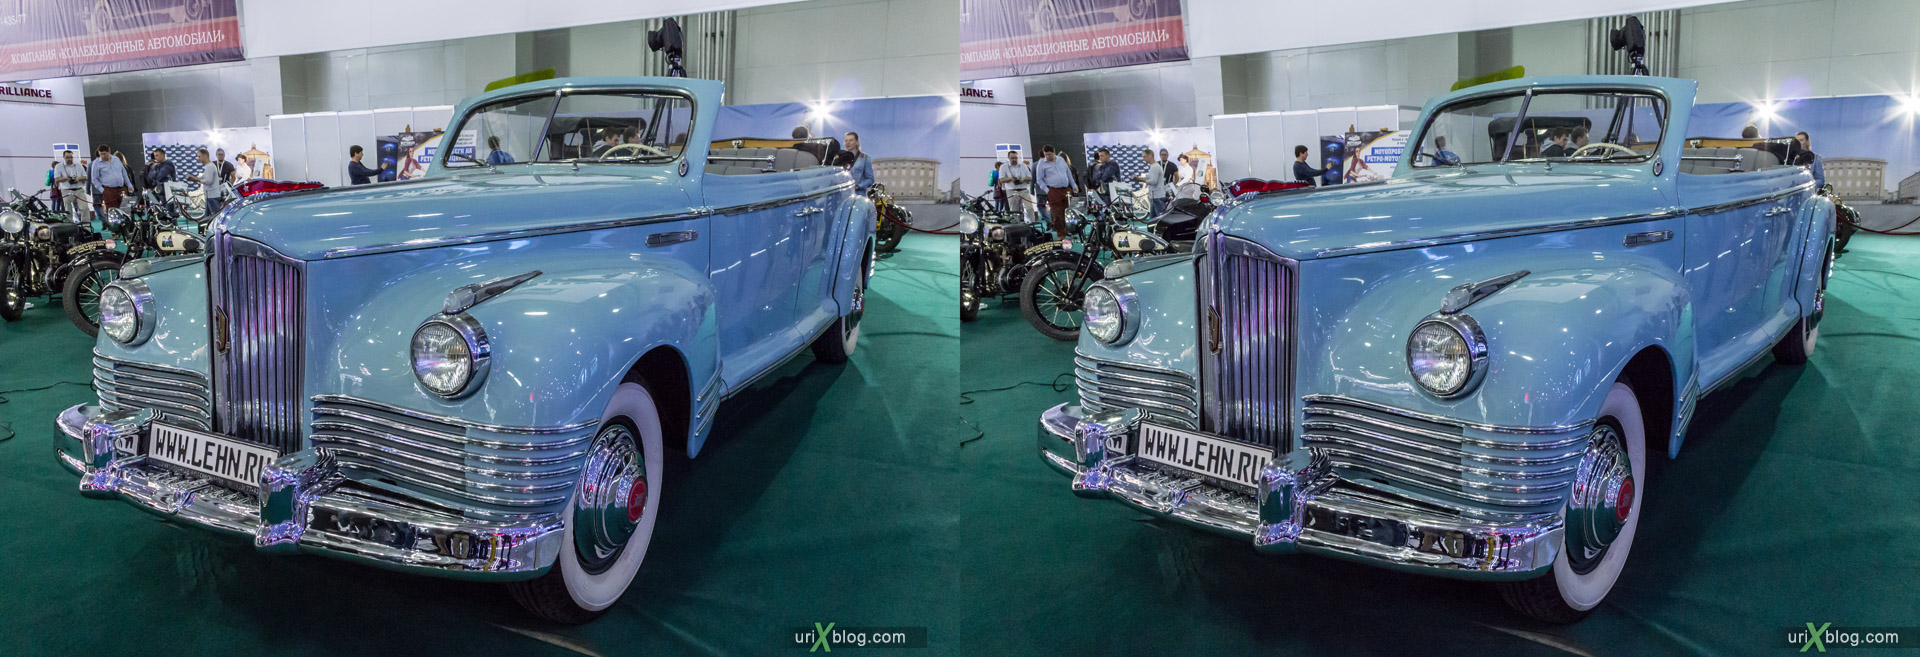 2014, ZIS, Moscow International Automobile Salon, MIAS, Crocus Expo, Moscow, Russia, augest, 3D, stereo pair, cross-eyed, crossview, cross view stereo pair, stereoscopic